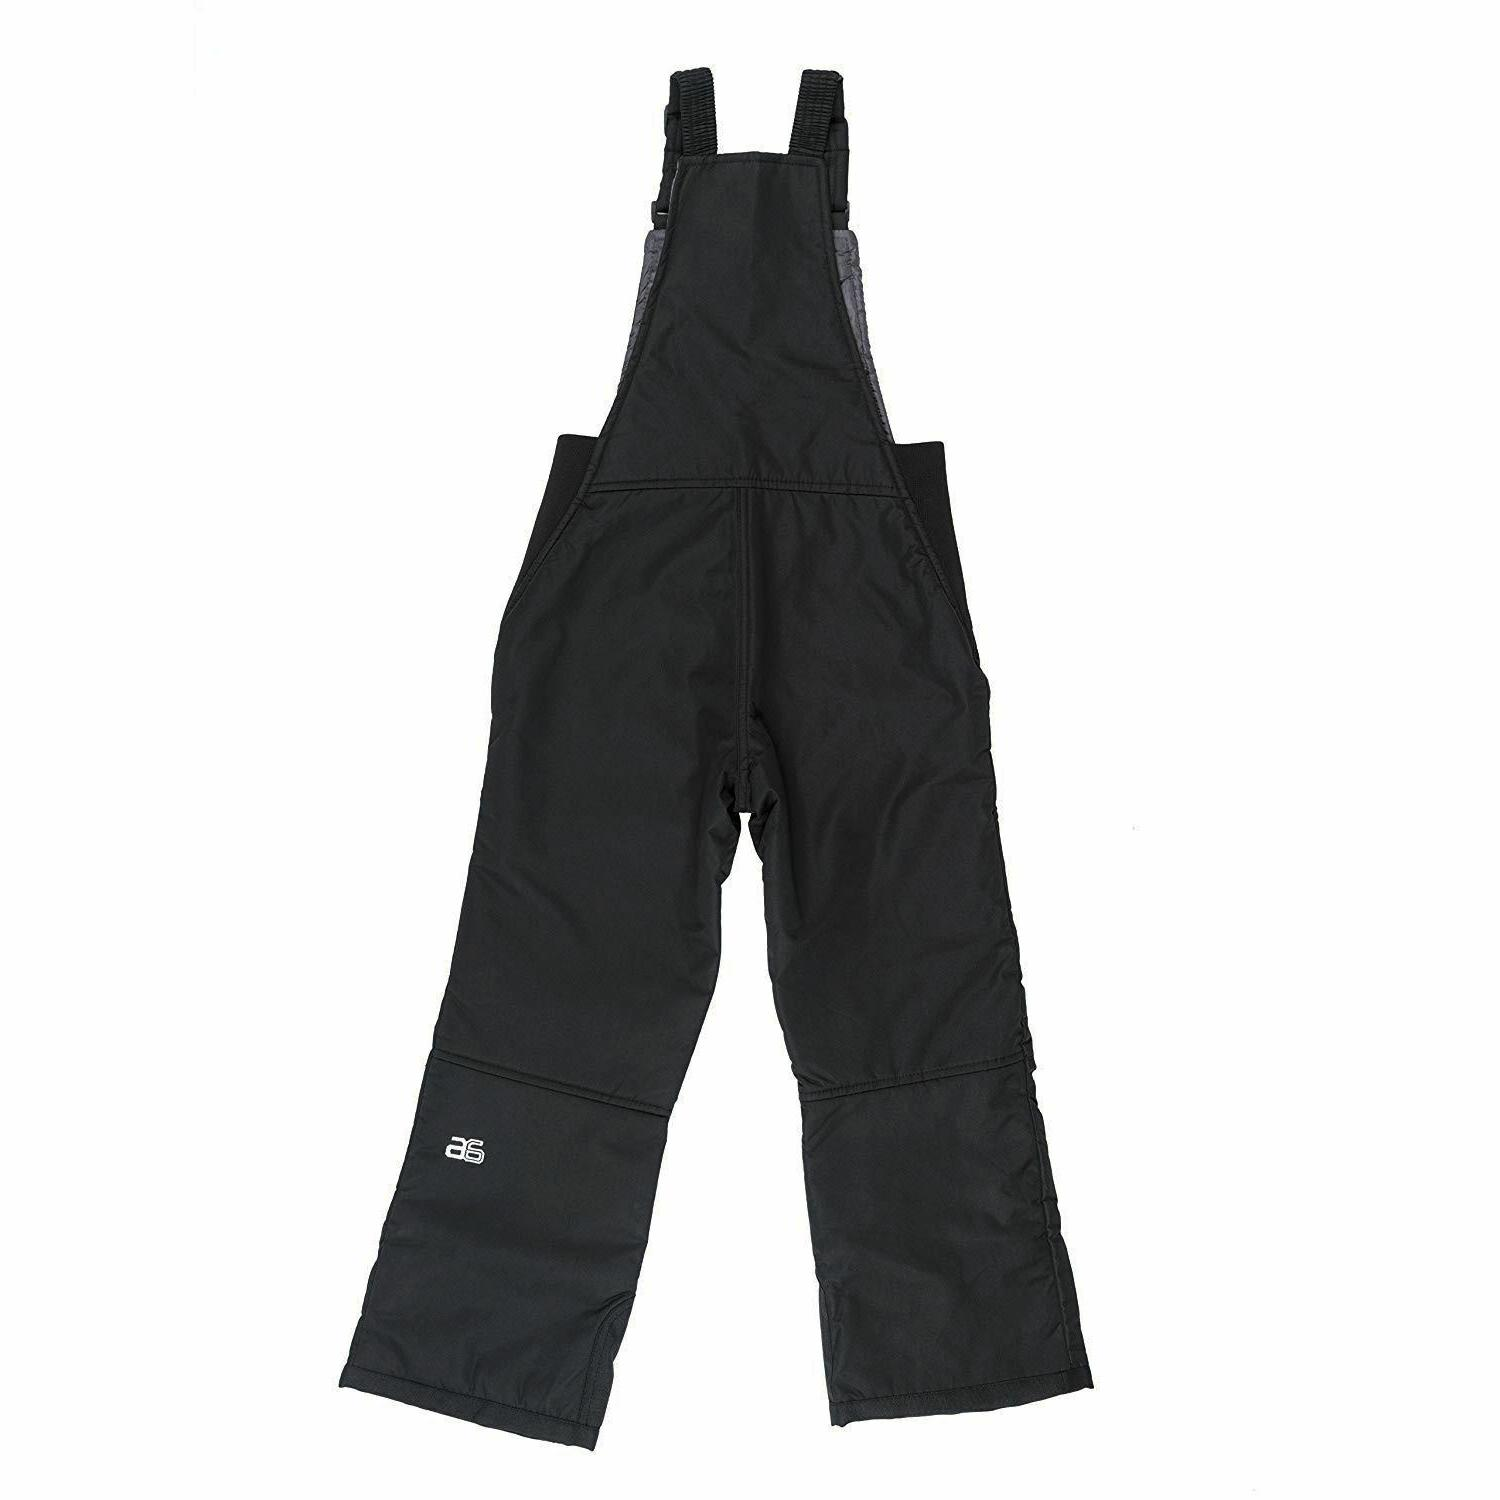 Skigear by Insulated Bib Overalls